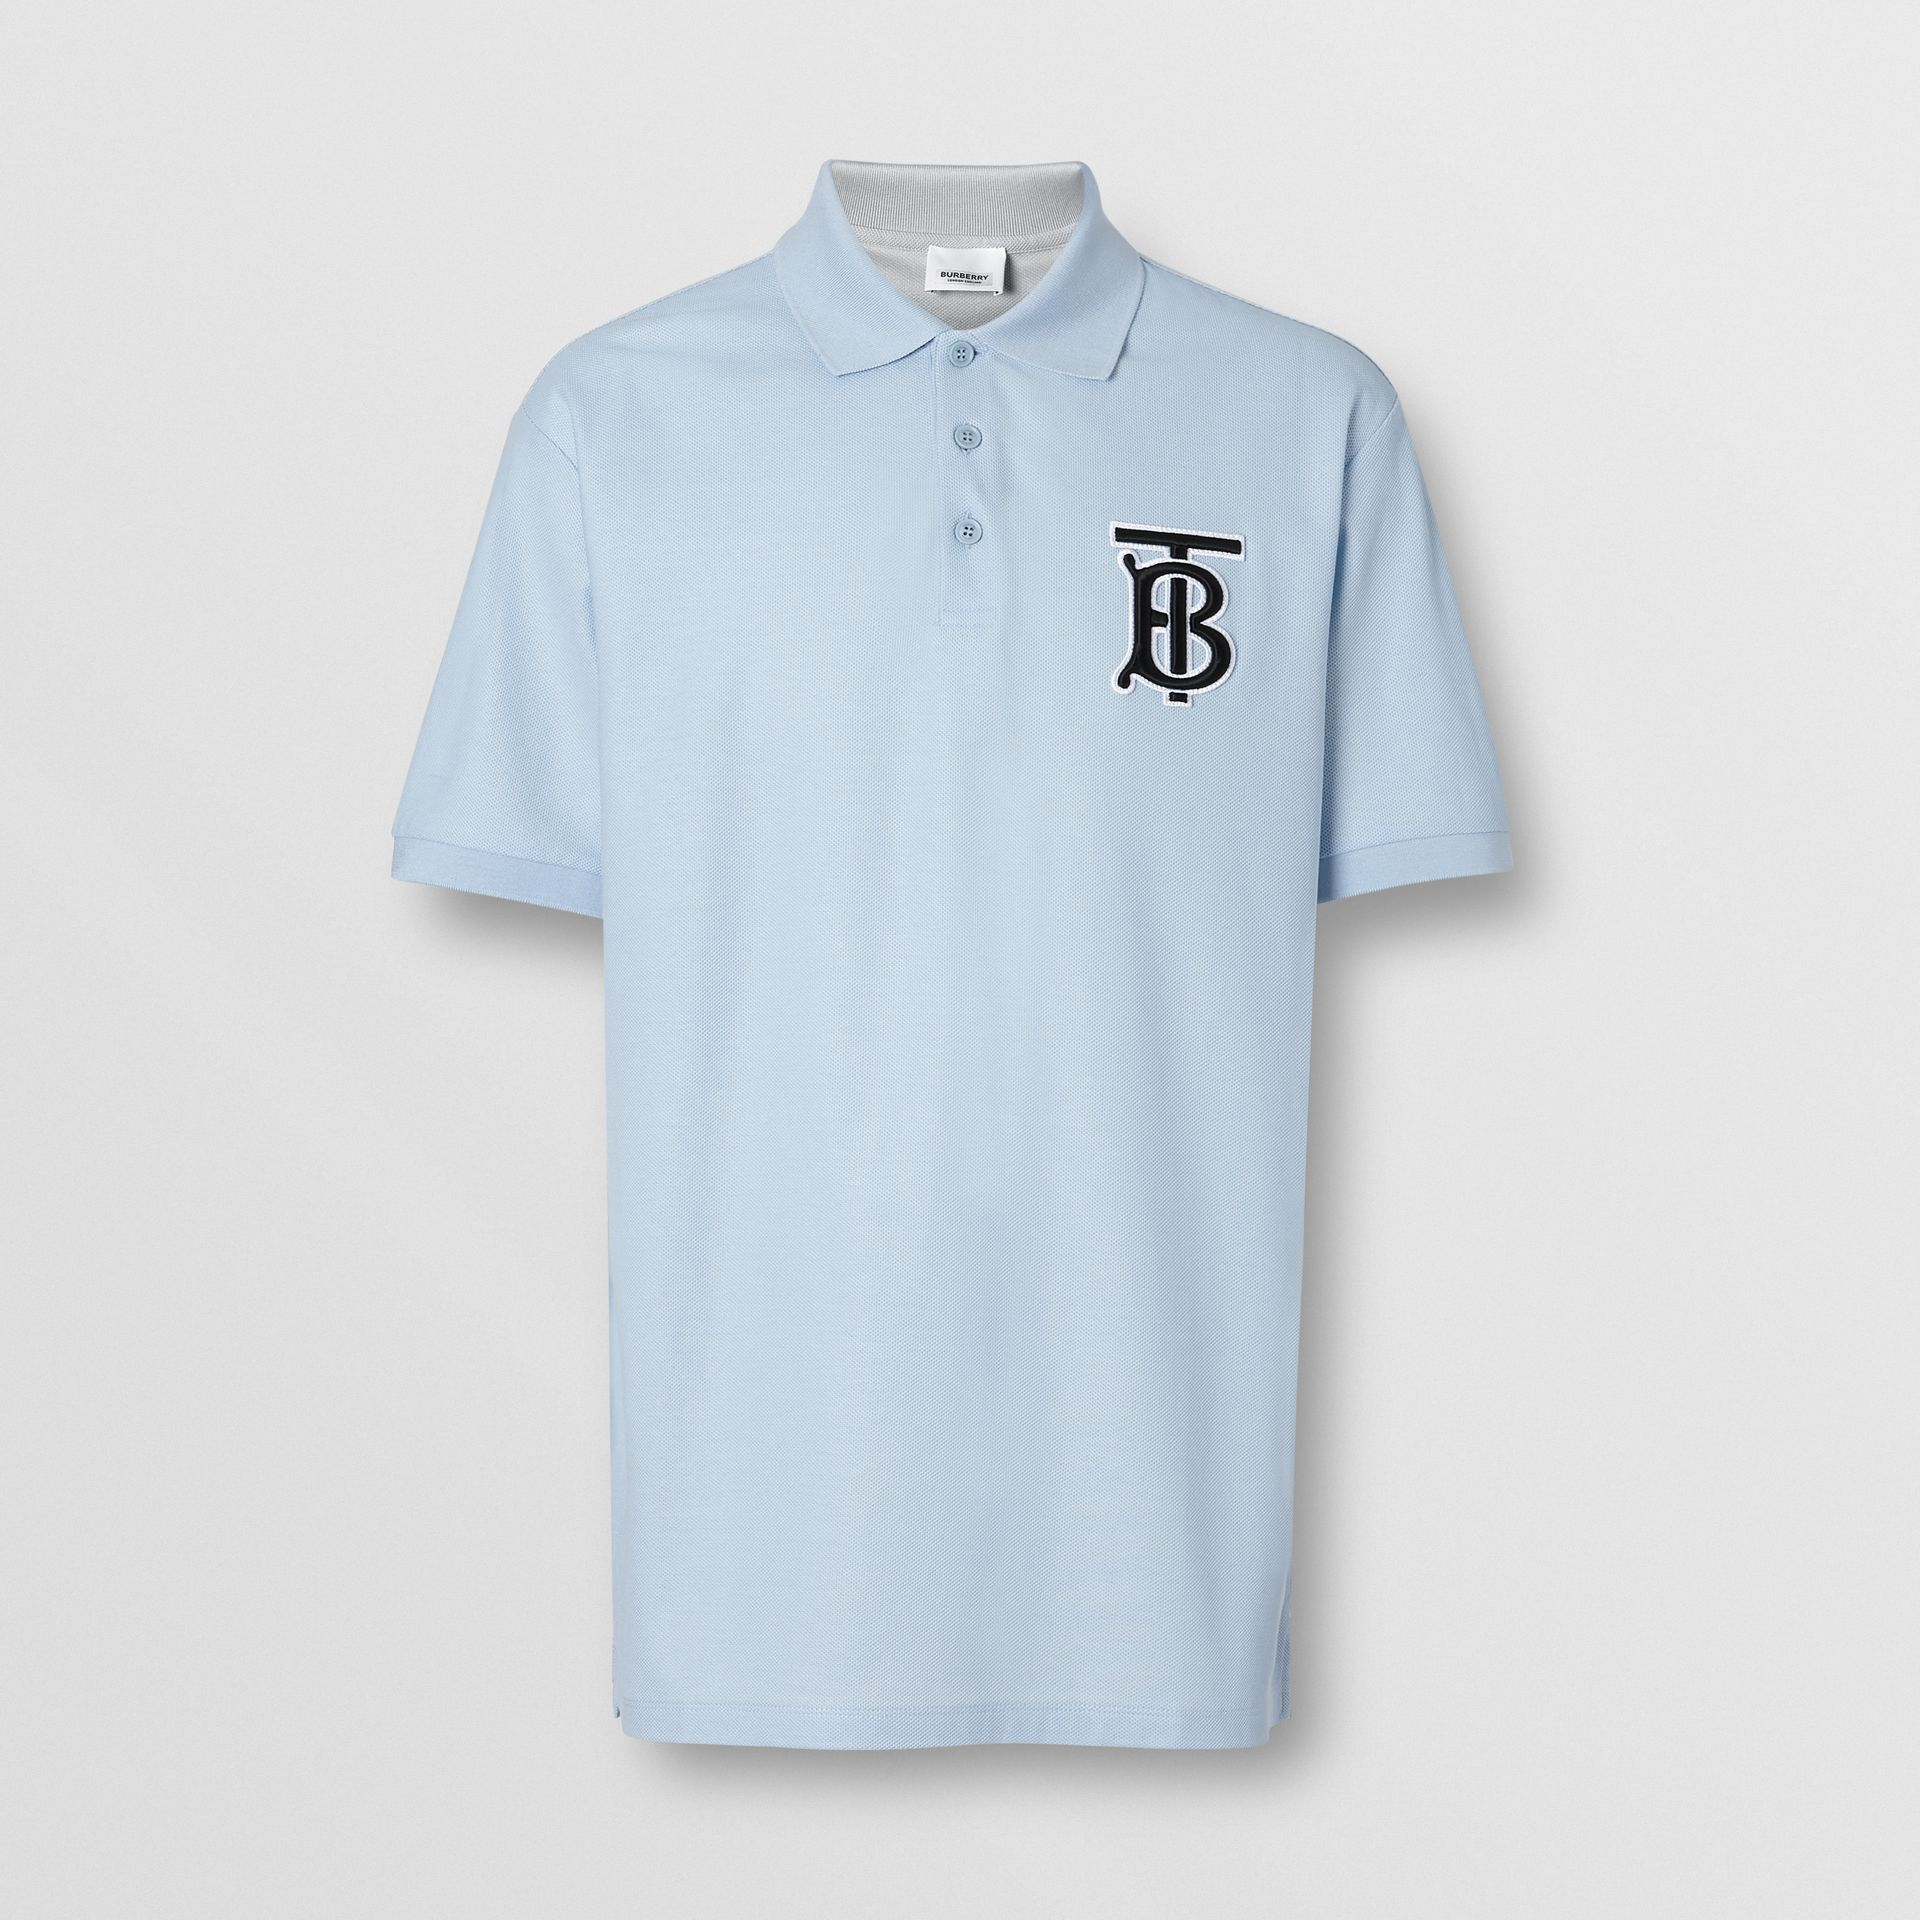 Monogram Motif Cotton Piqué Oversized Polo Shirt in Pale Blue - Men | Burberry Canada - gallery image 3